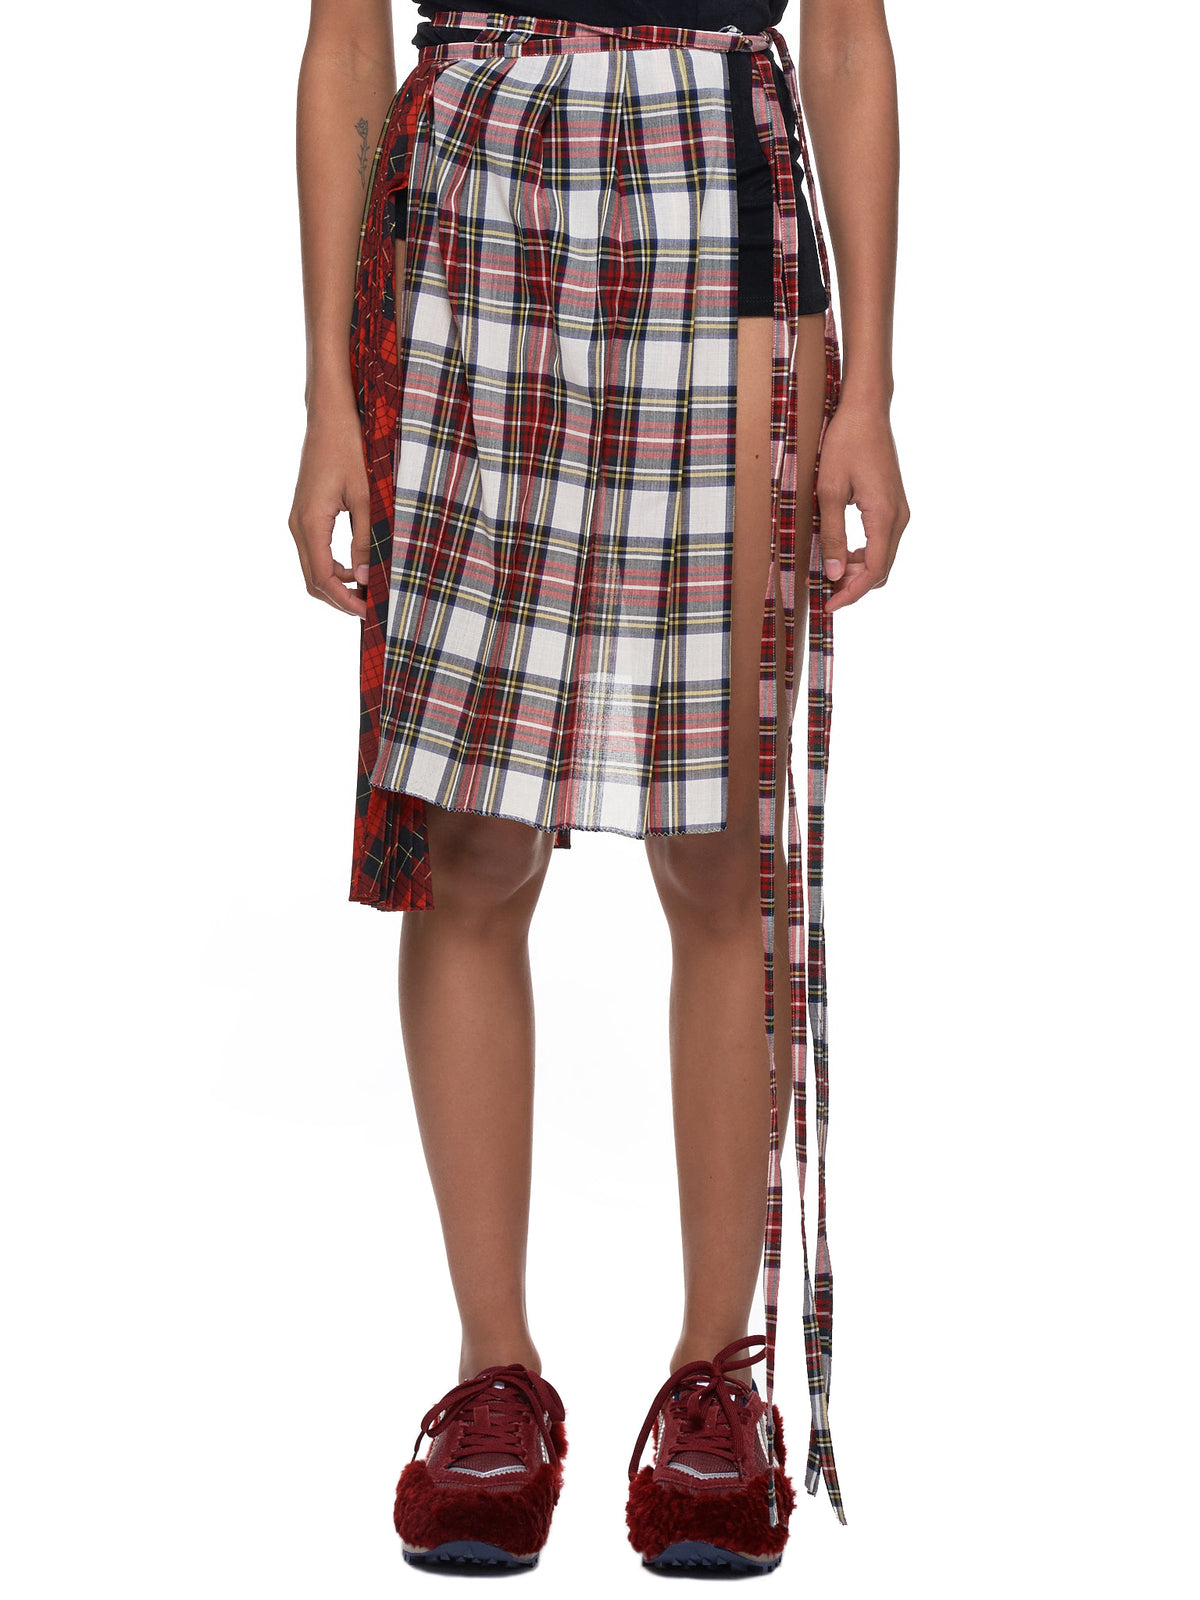 Deconstructed Plaid Skirt (FNTACW01-WHITE-RED)